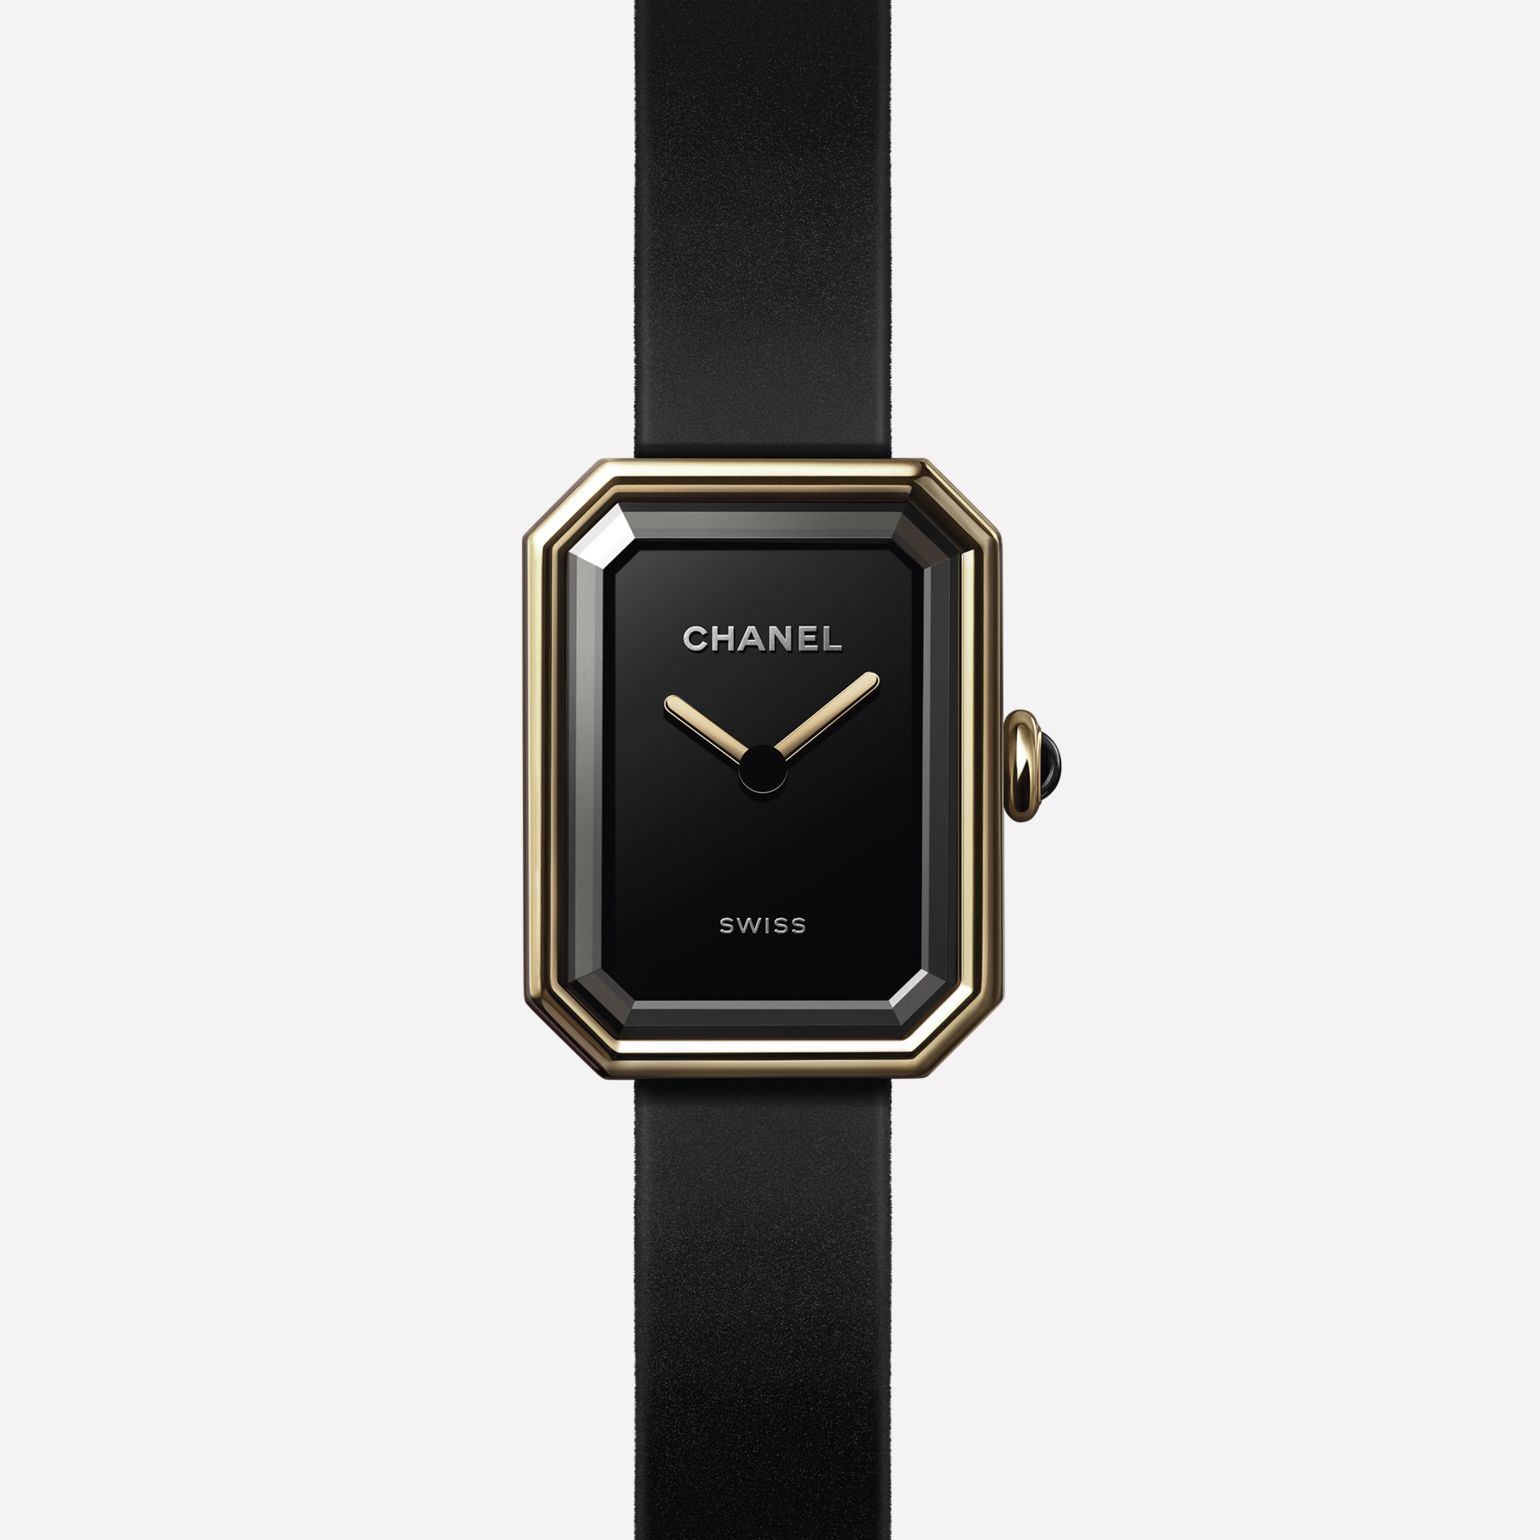 Première Velours Watch Yellow gold and titanium, black rubber strap with velvet touch, black-lacquered dial